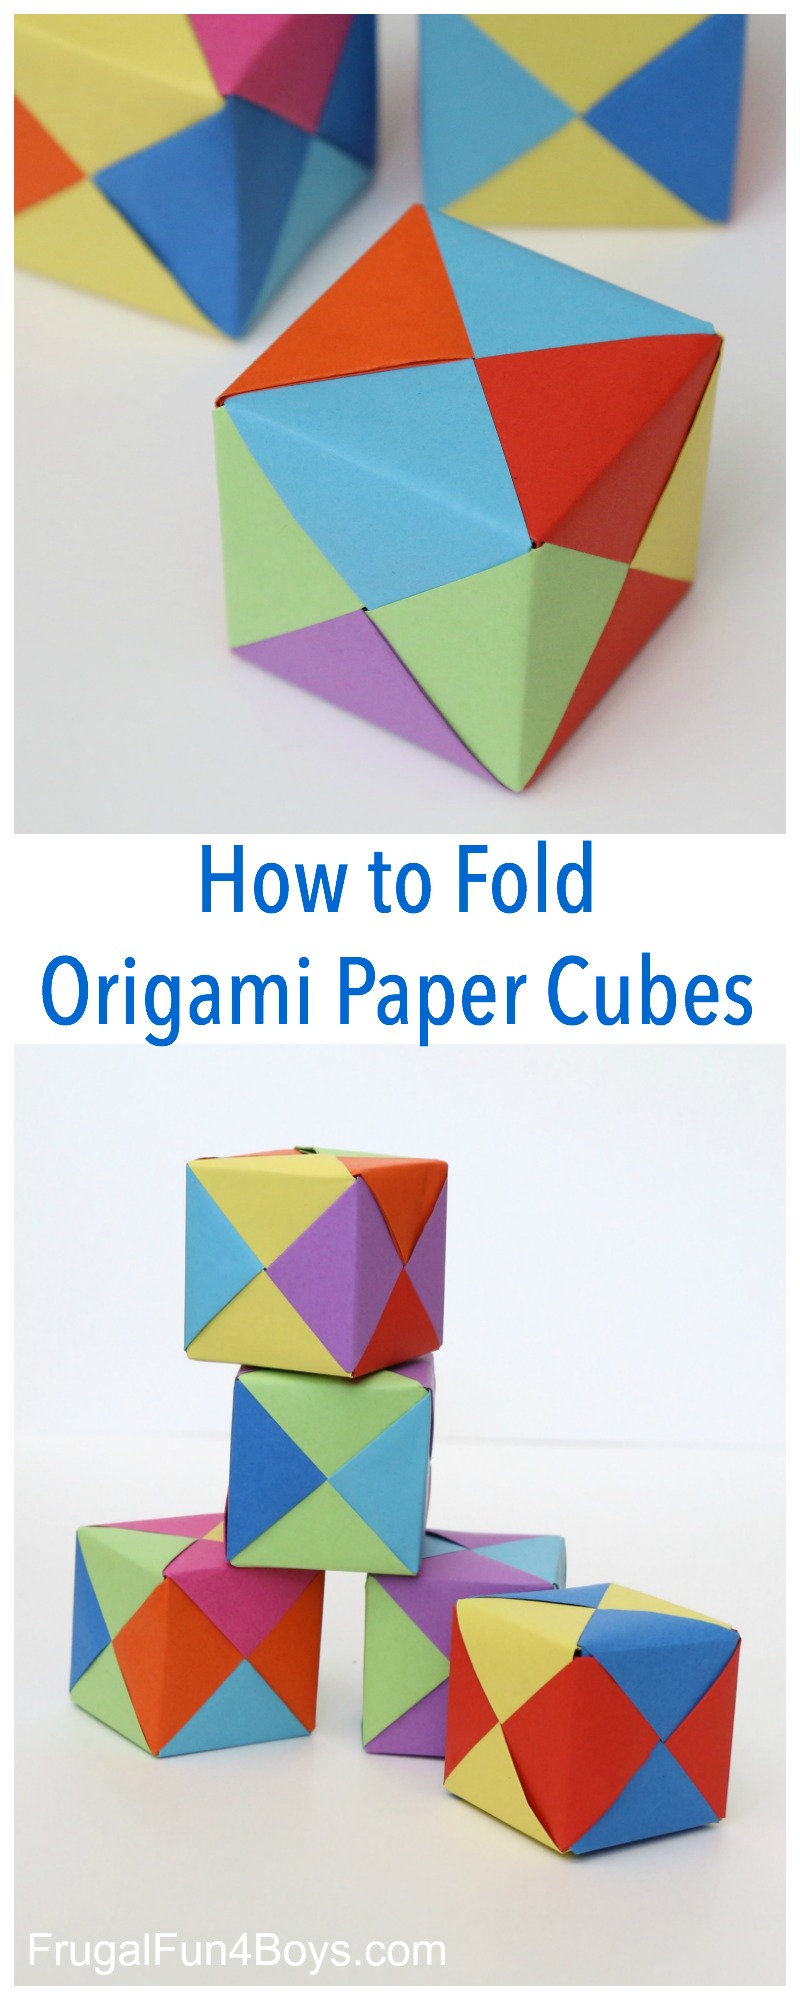 How to Fold Origami Paper Cubes - Frugal Fun For Boys and Girls | 2000x800